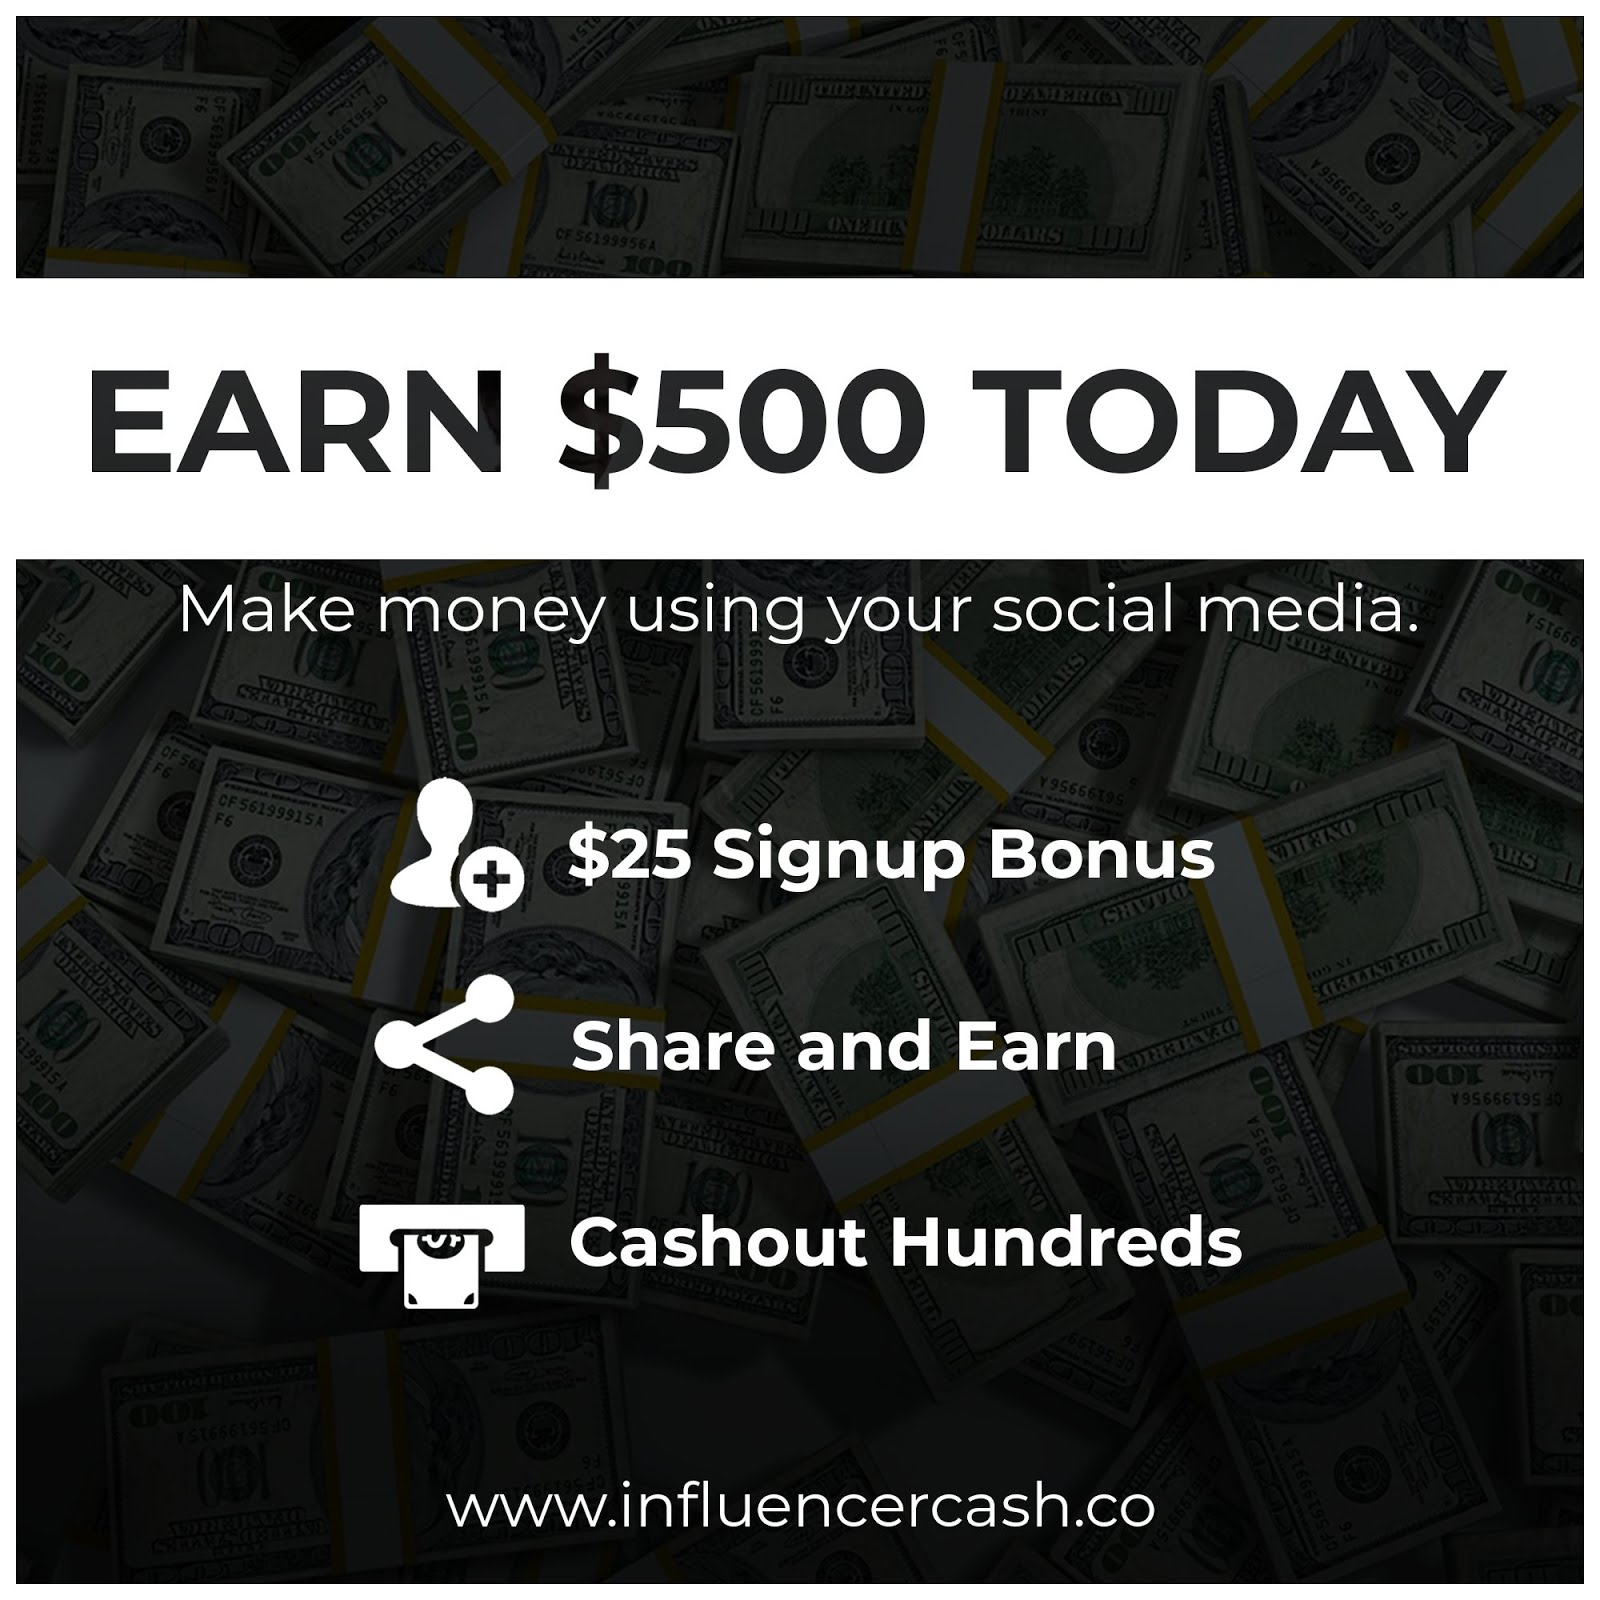 Register Free to Get $25